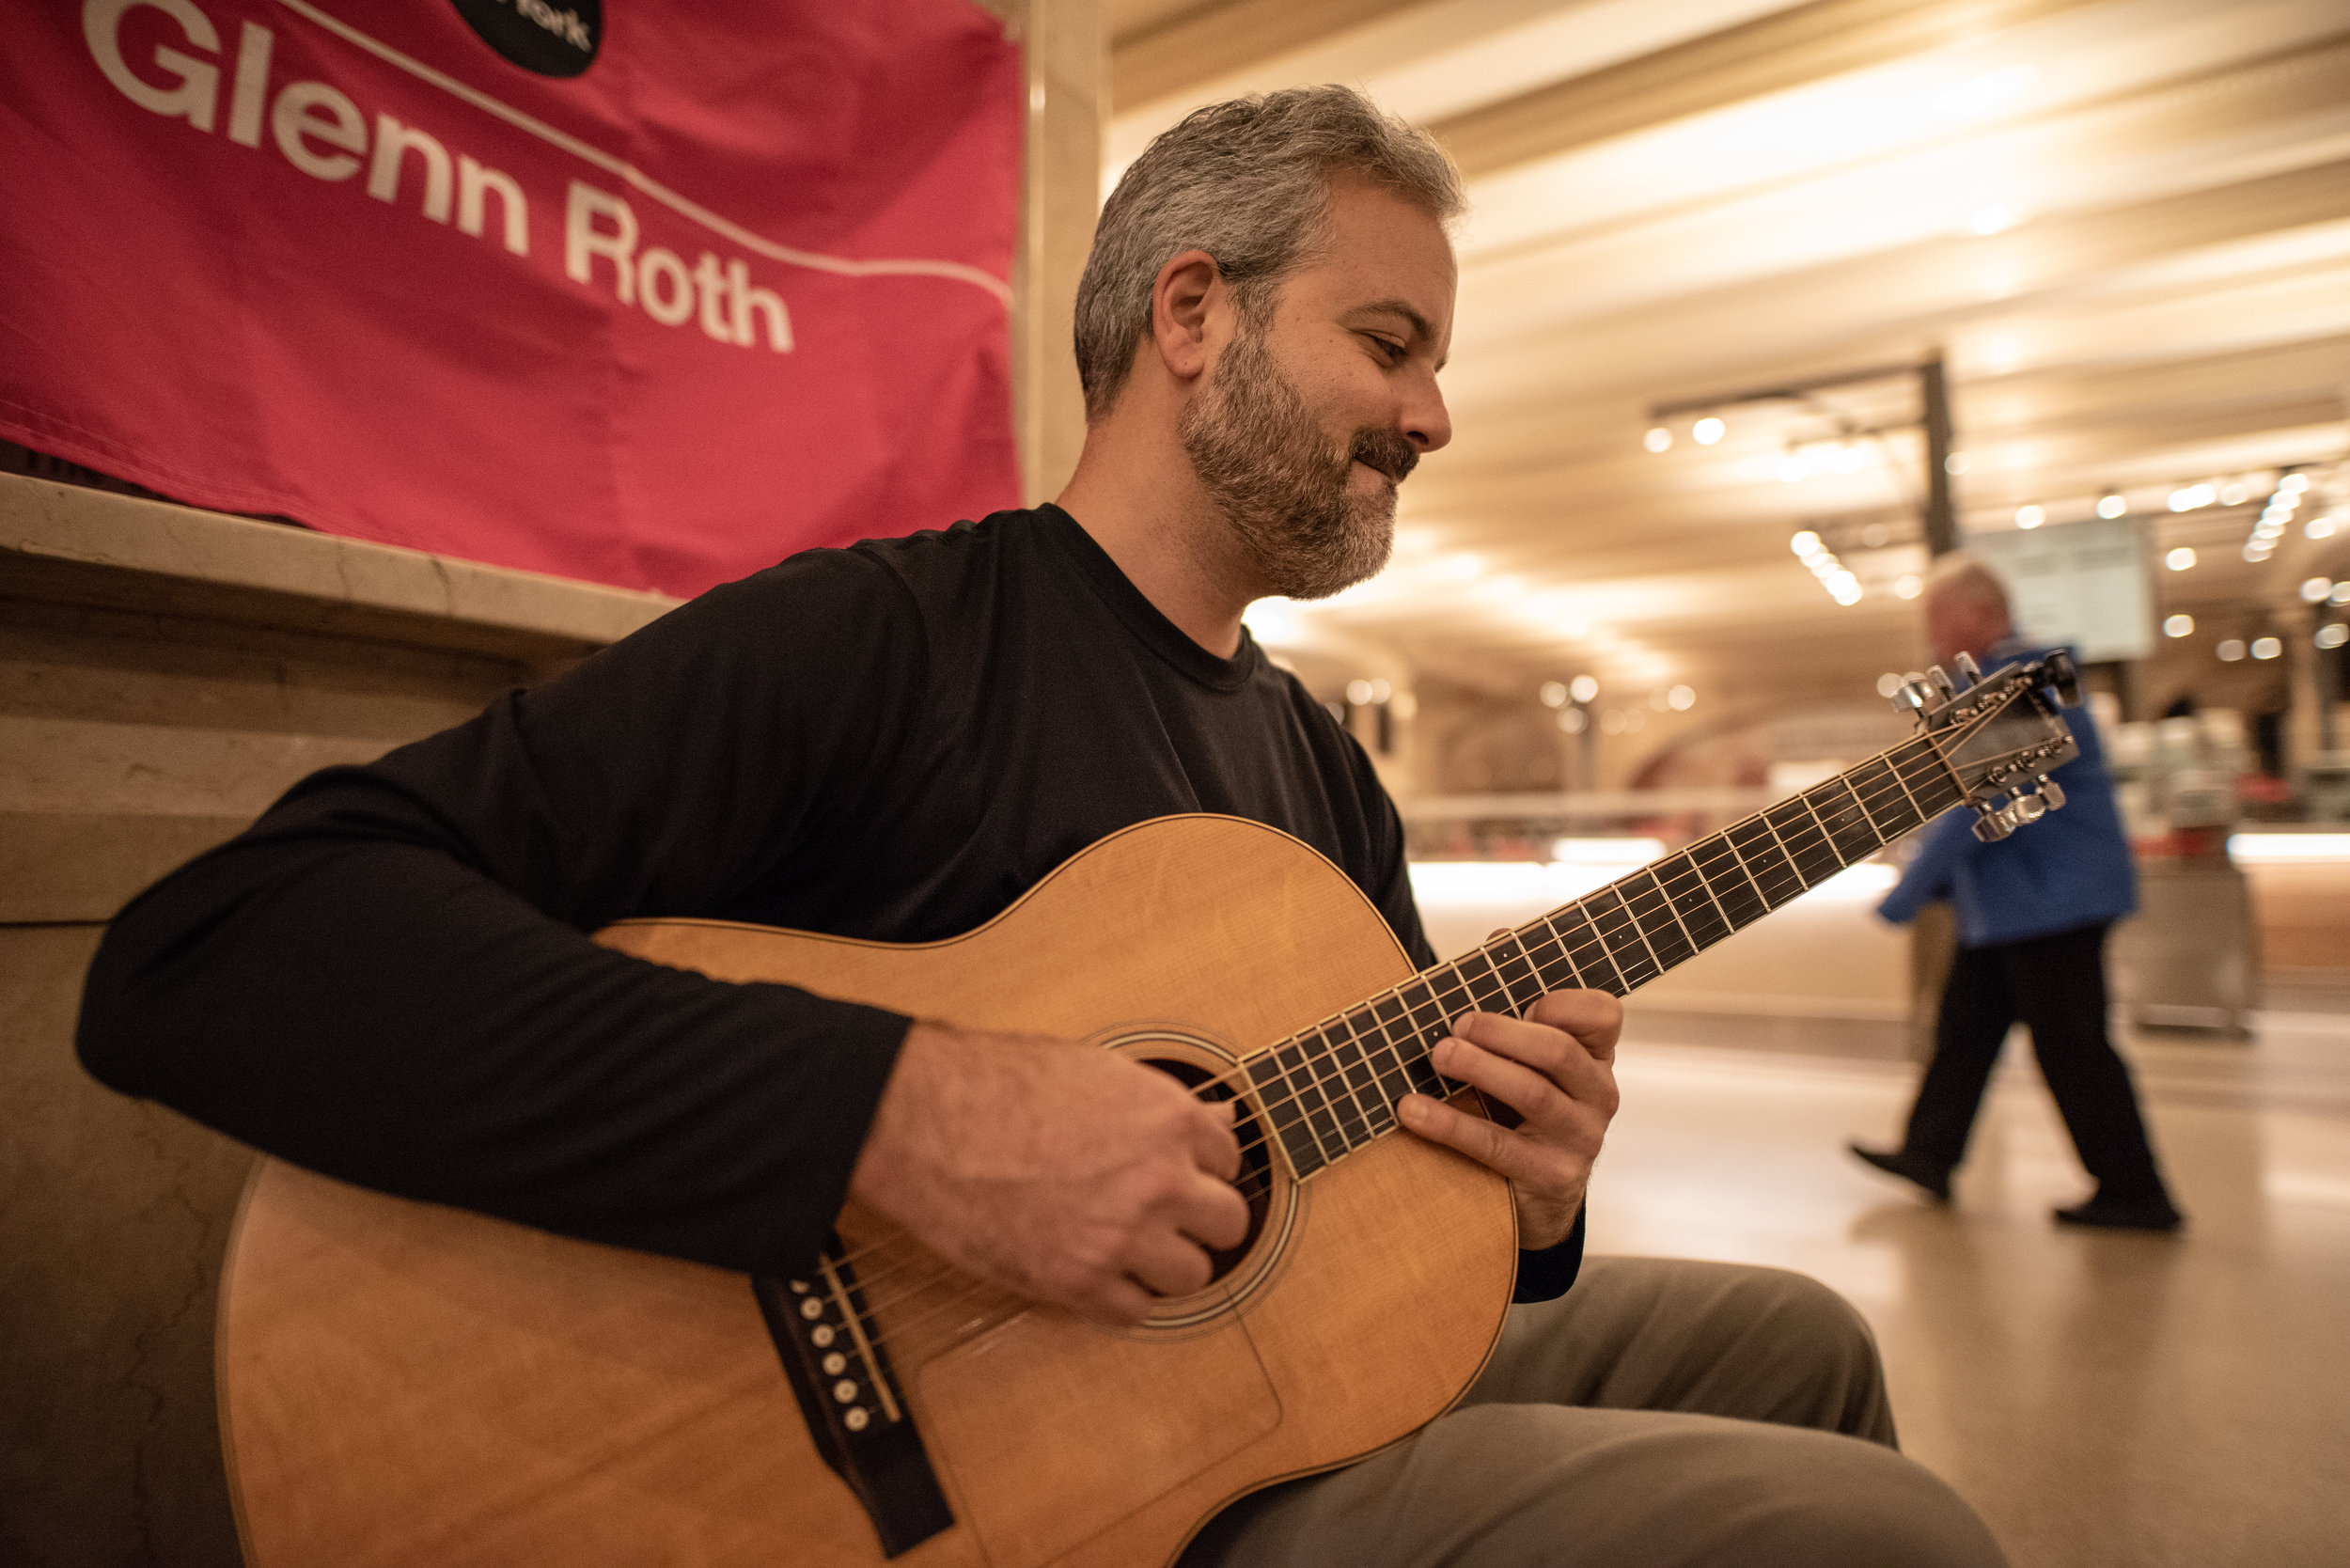 Glenn Roth is a full time musician, dedicated to the craft.